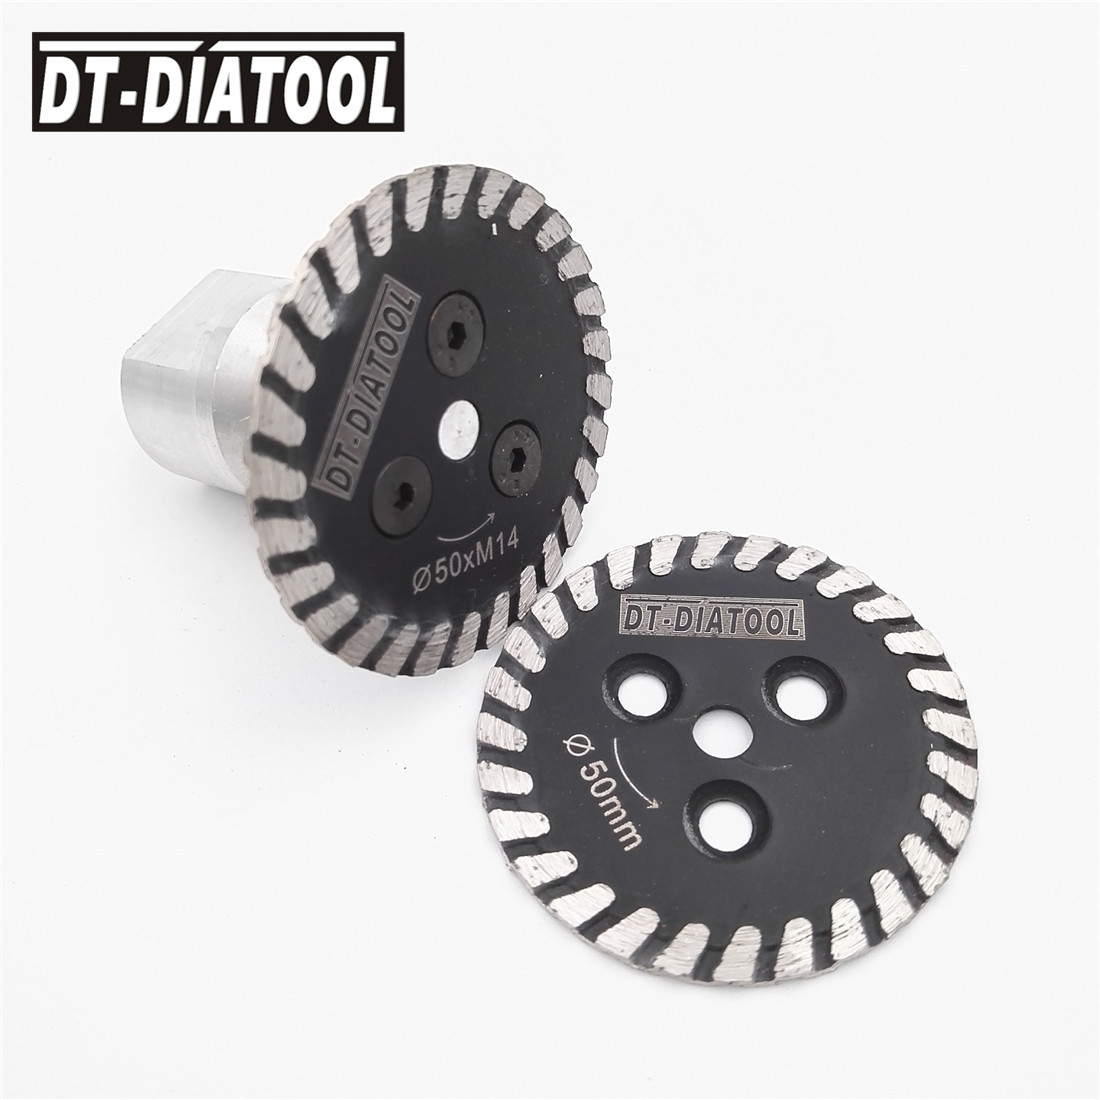 цены на DT-DIATOOL 2pcs Mini Diamond cutting disc Hot pressed saw blade 1pc removable M14 flange carving stone marble concrete